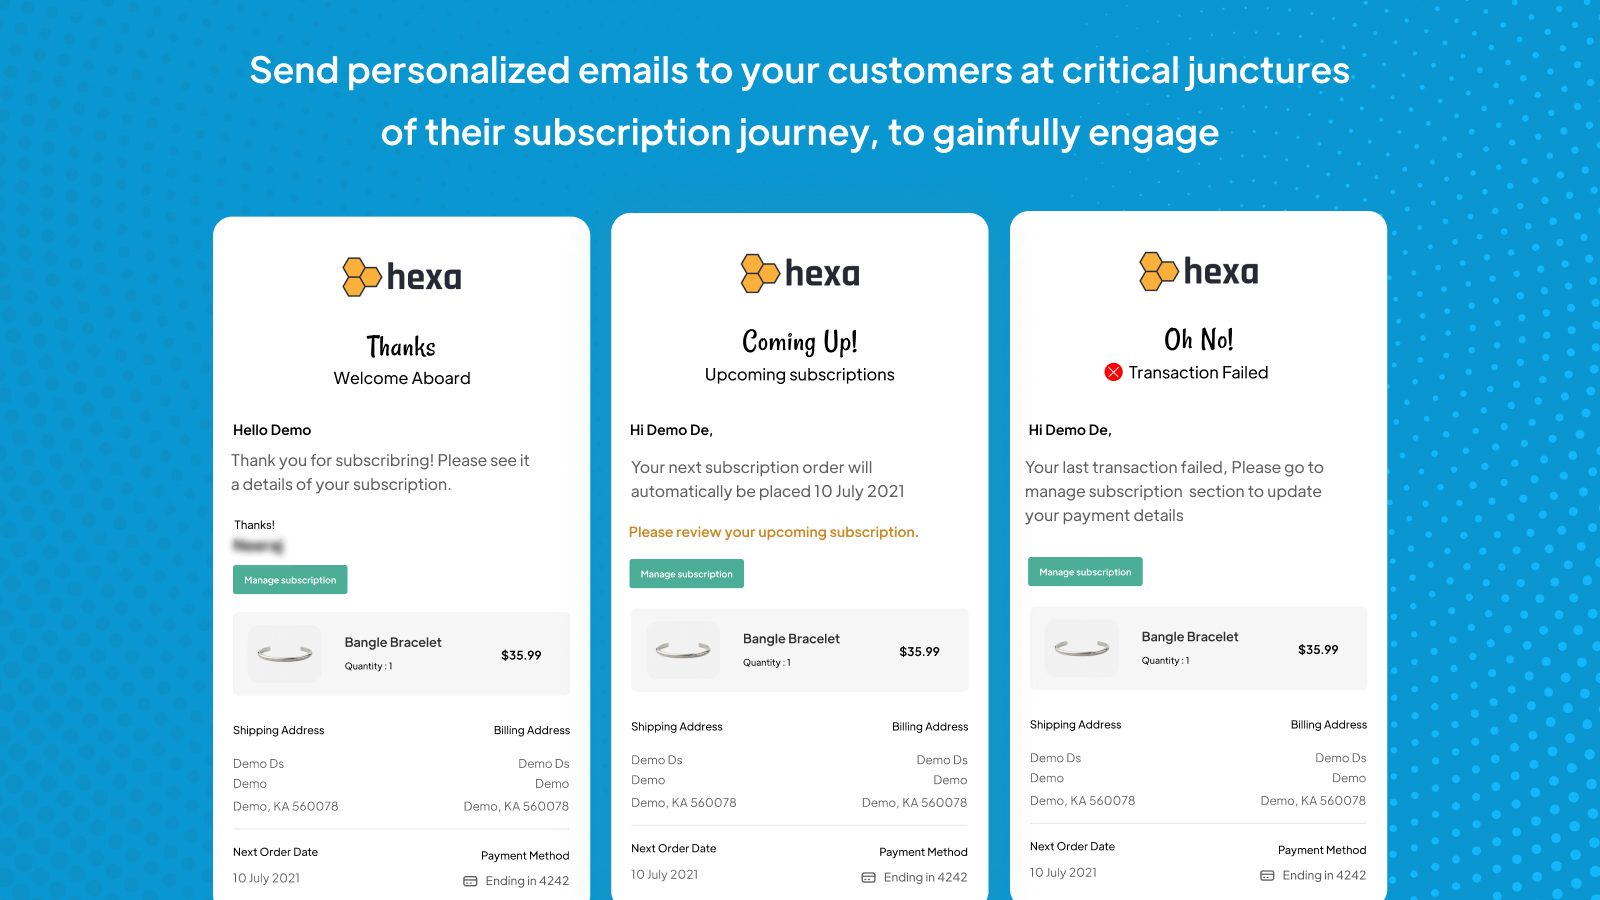 Personalized customer emails to smartly engage